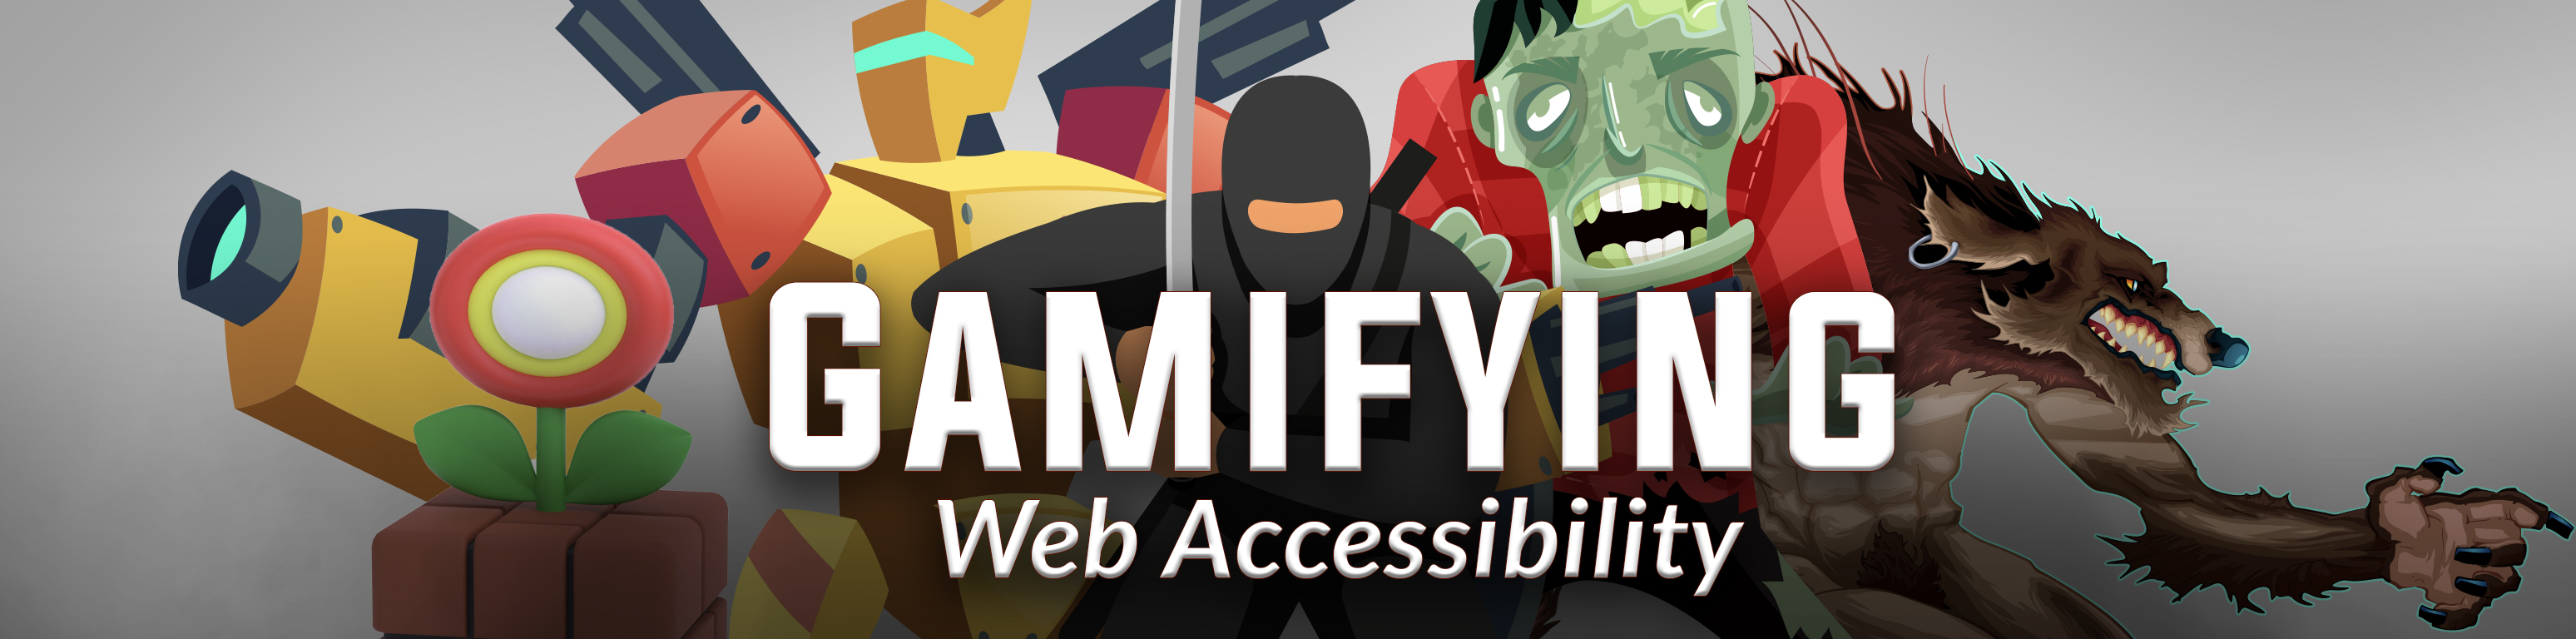 Gamifying Web Accessibility